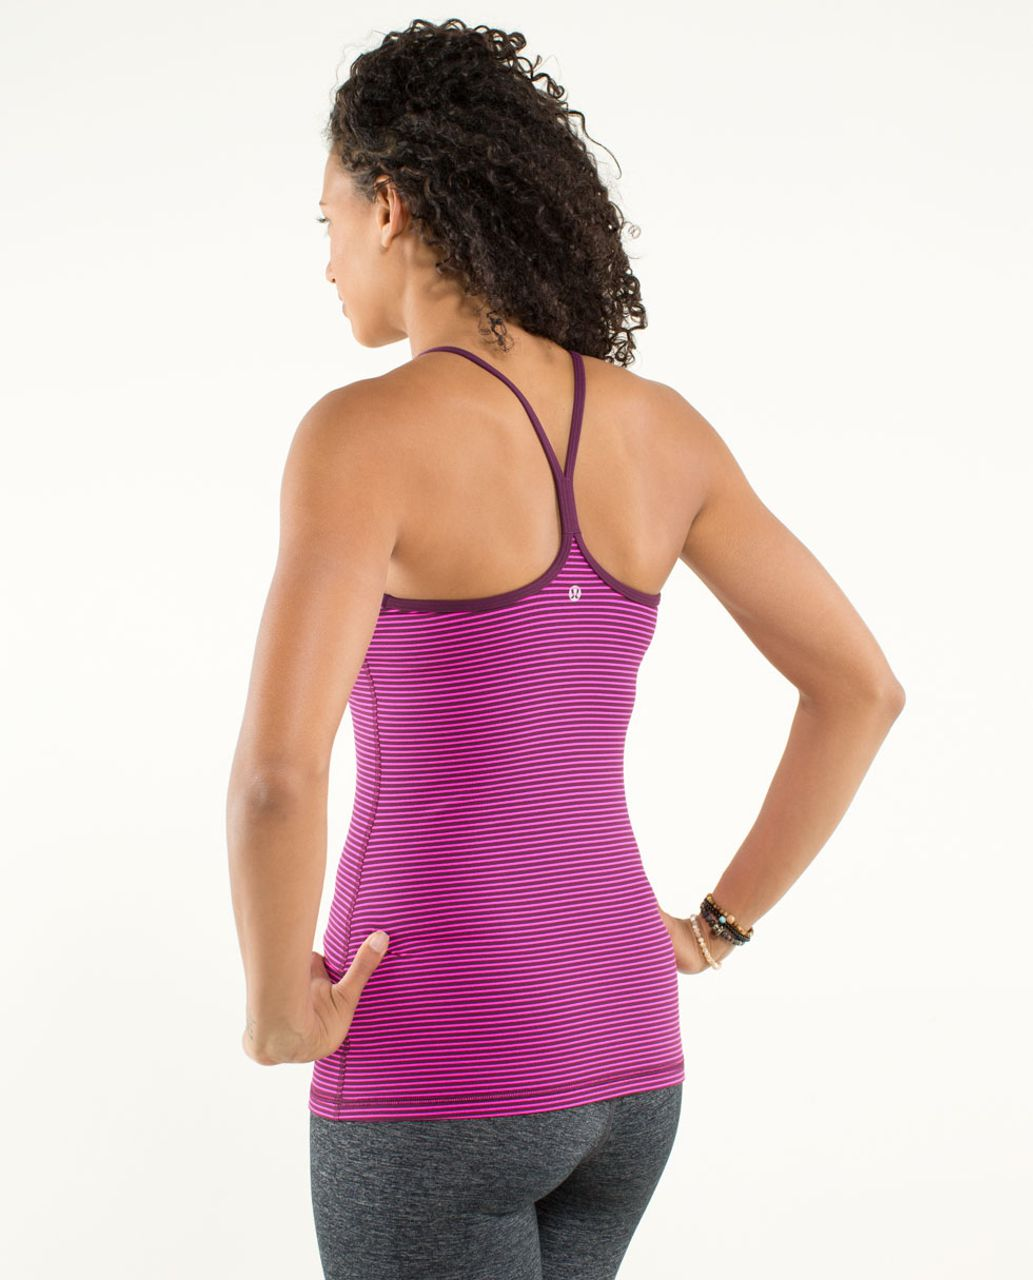 Lululemon Power Y Tank *Luon Light - Hyper Stripe Raspberry Glo Light / Plum